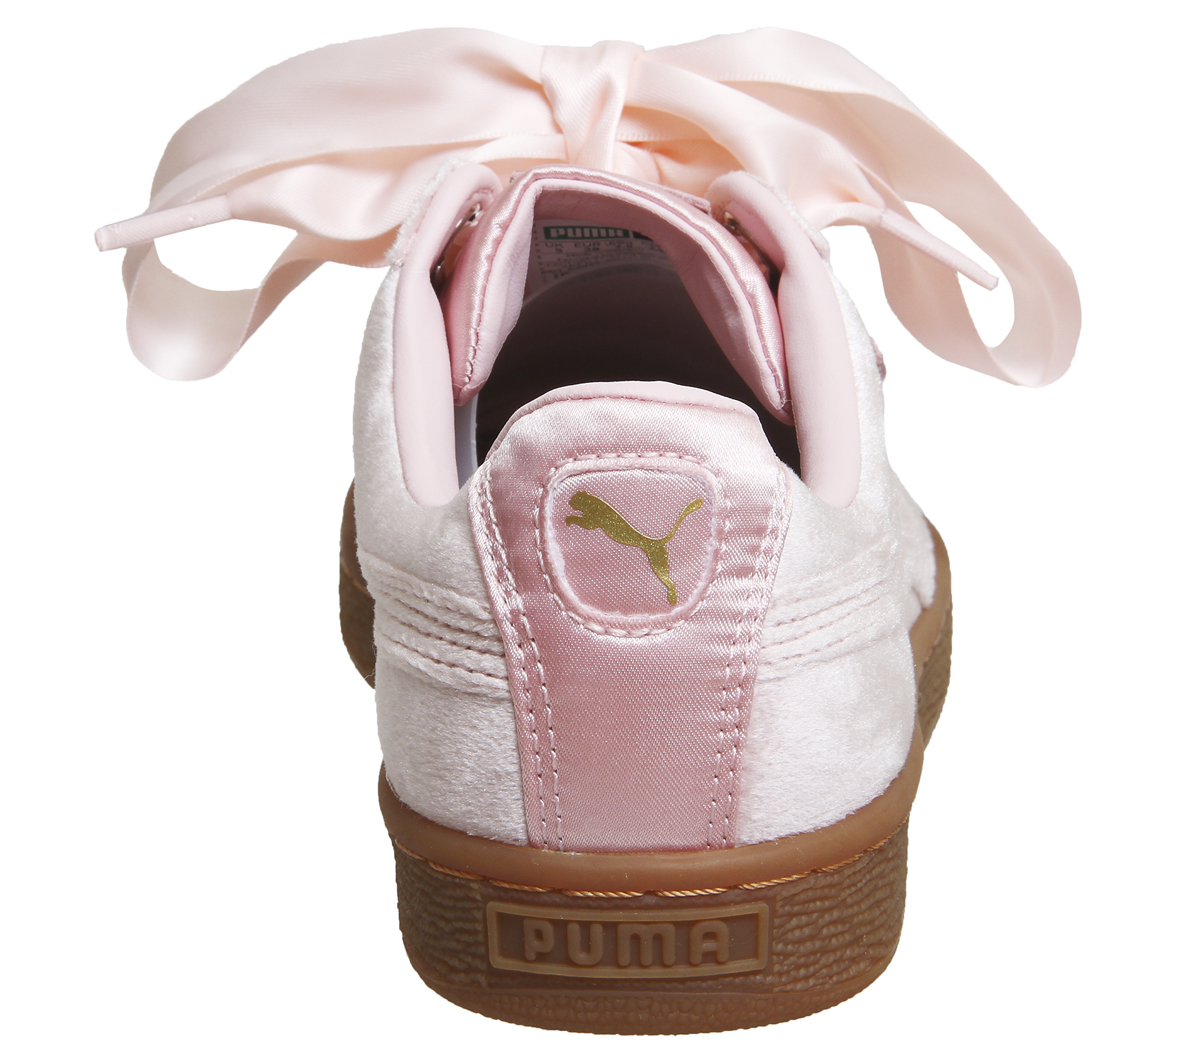 1b2a8ffd02e225 Sentinel Womens Puma Basket Heart Trainers Silver Pink Gum Trainers Shoes